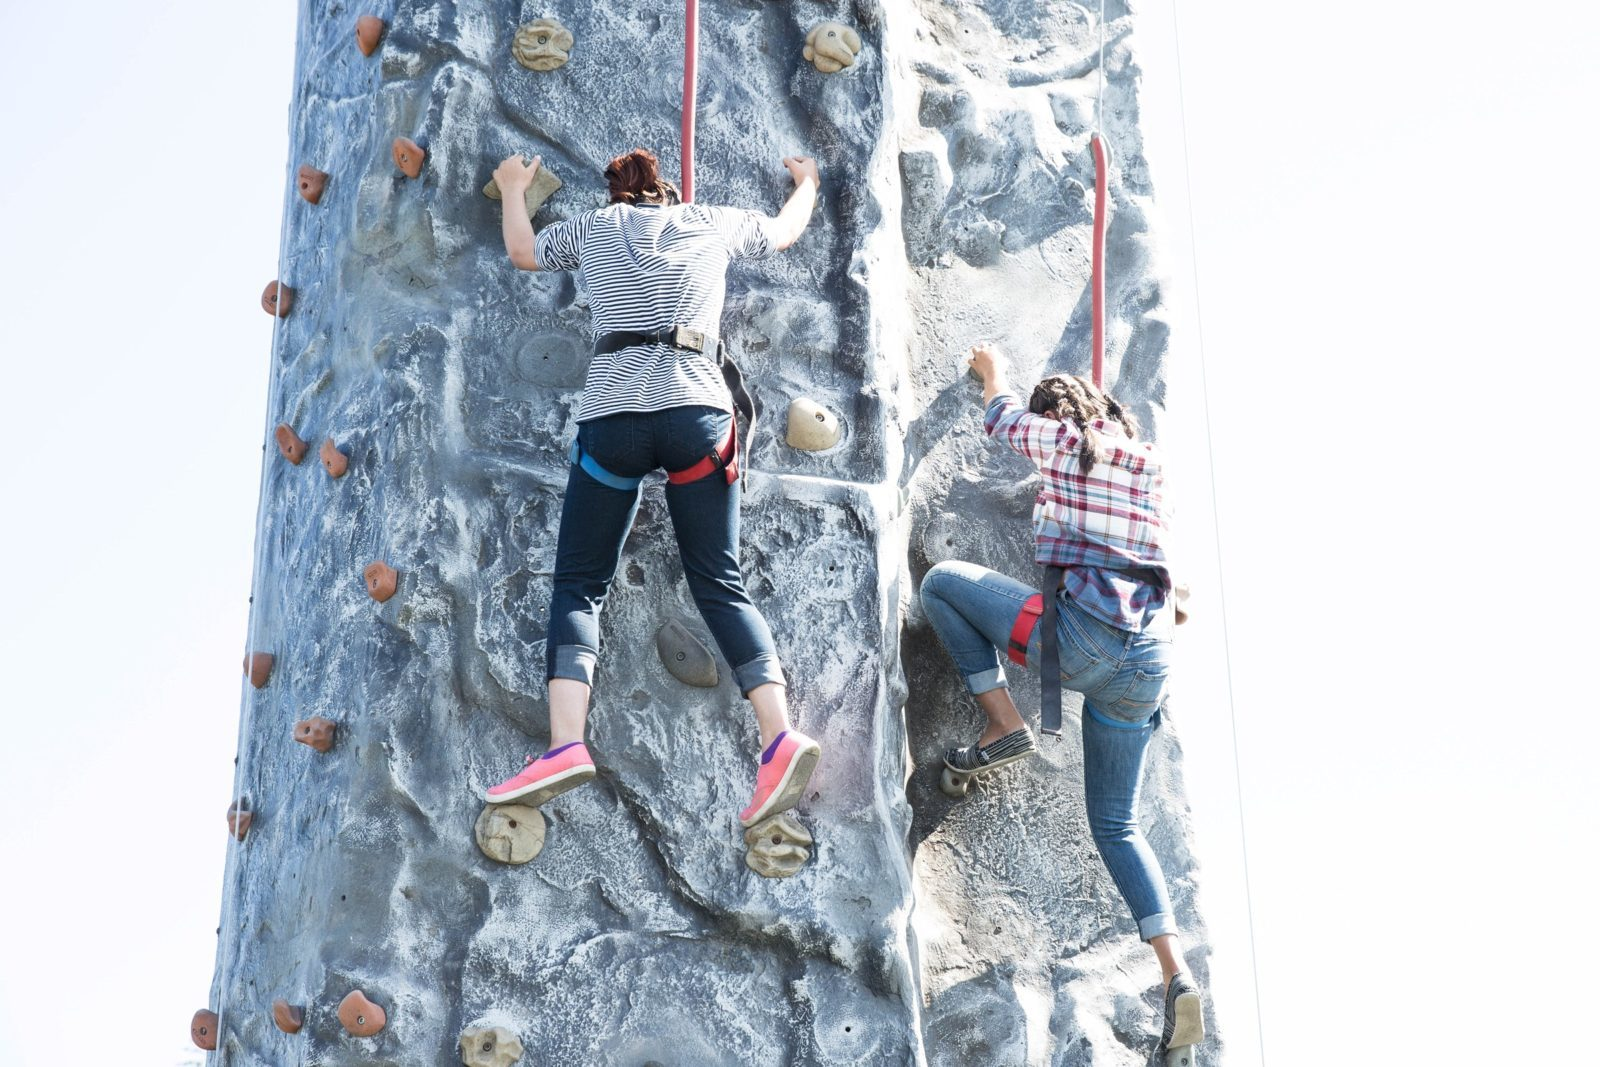 New York Rock Climbing Rentals